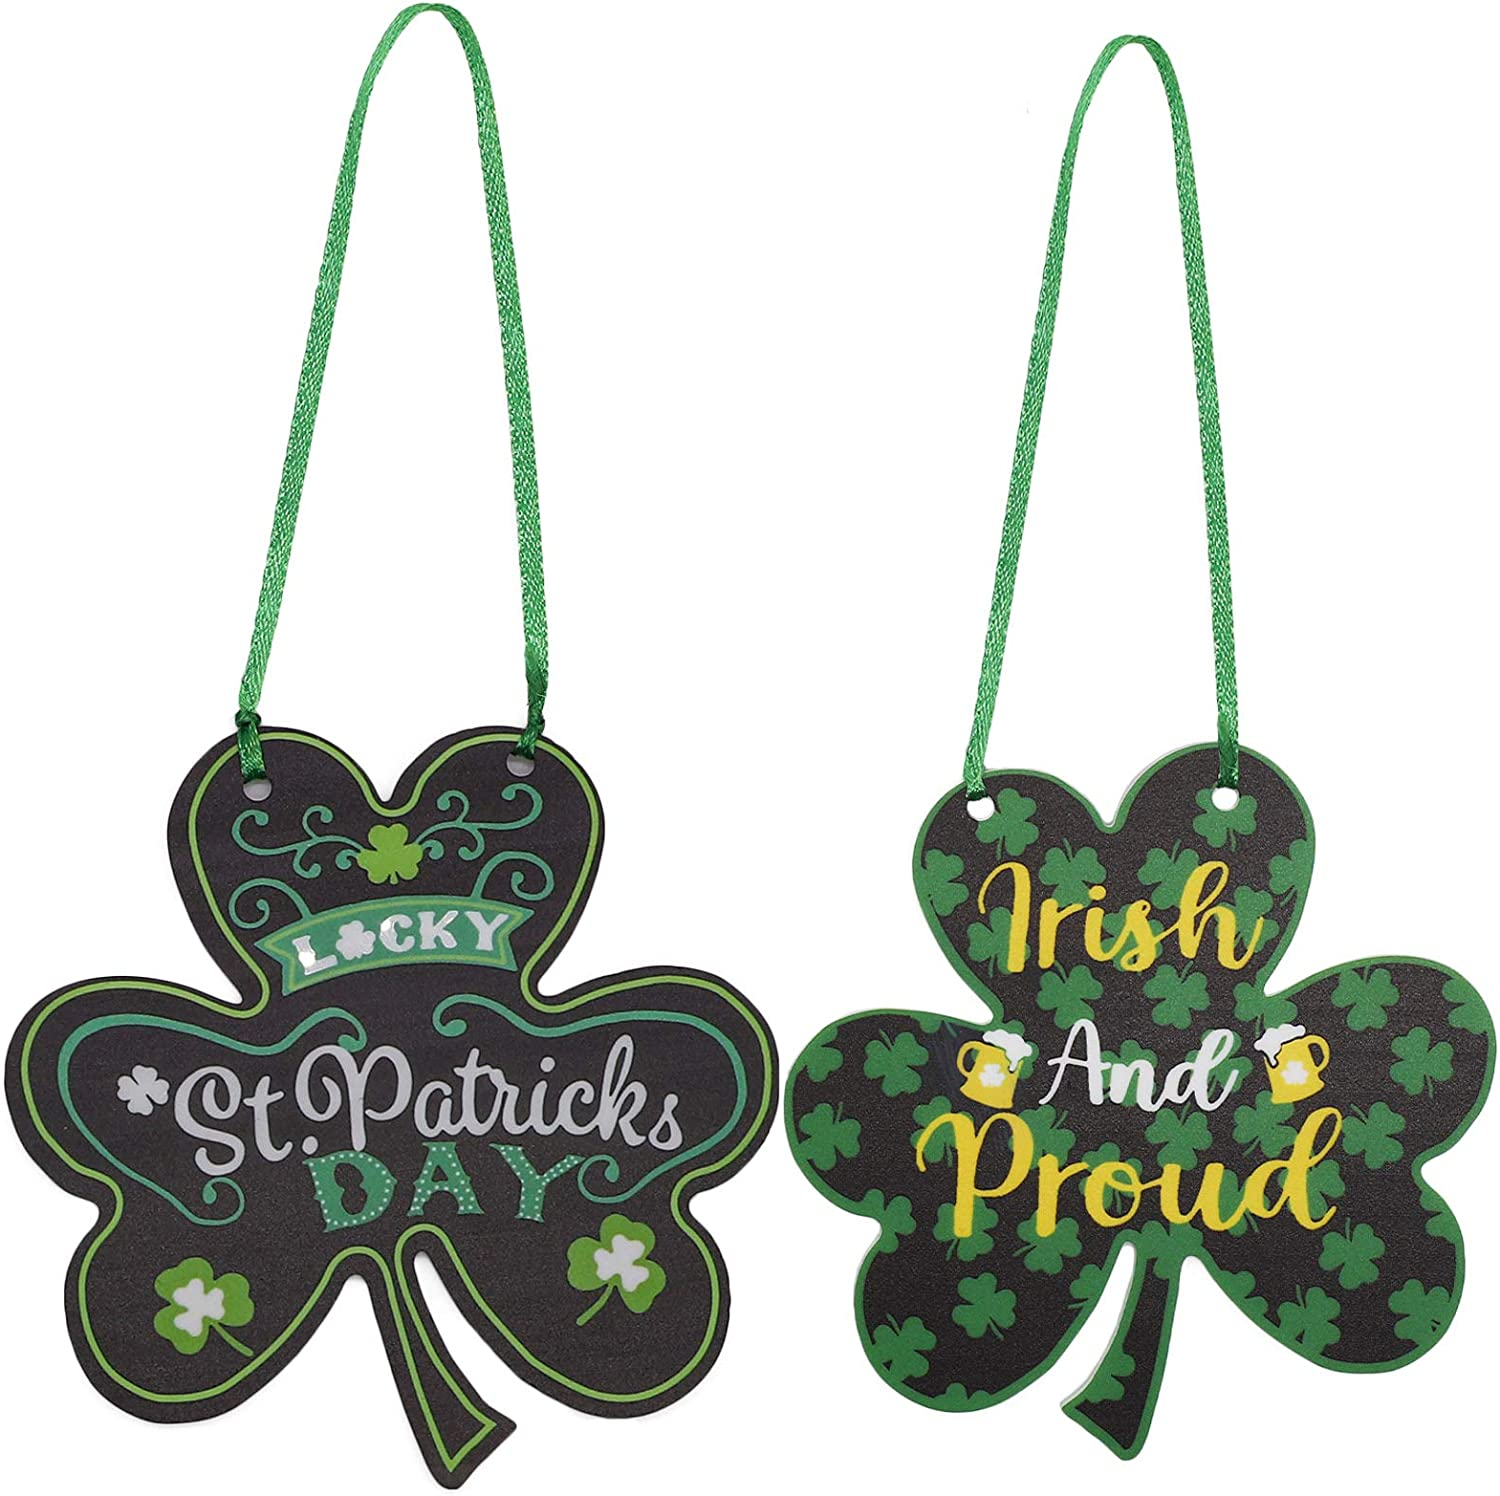 2Pcs St. Patrick's Day Decorations for Front Door, Hanging Shamrock Car Door Wall Sign, Irish Festival Decor Ornaments for St Patrick's Day Festival Tree Baubles Shelf Table Decorations (Green)